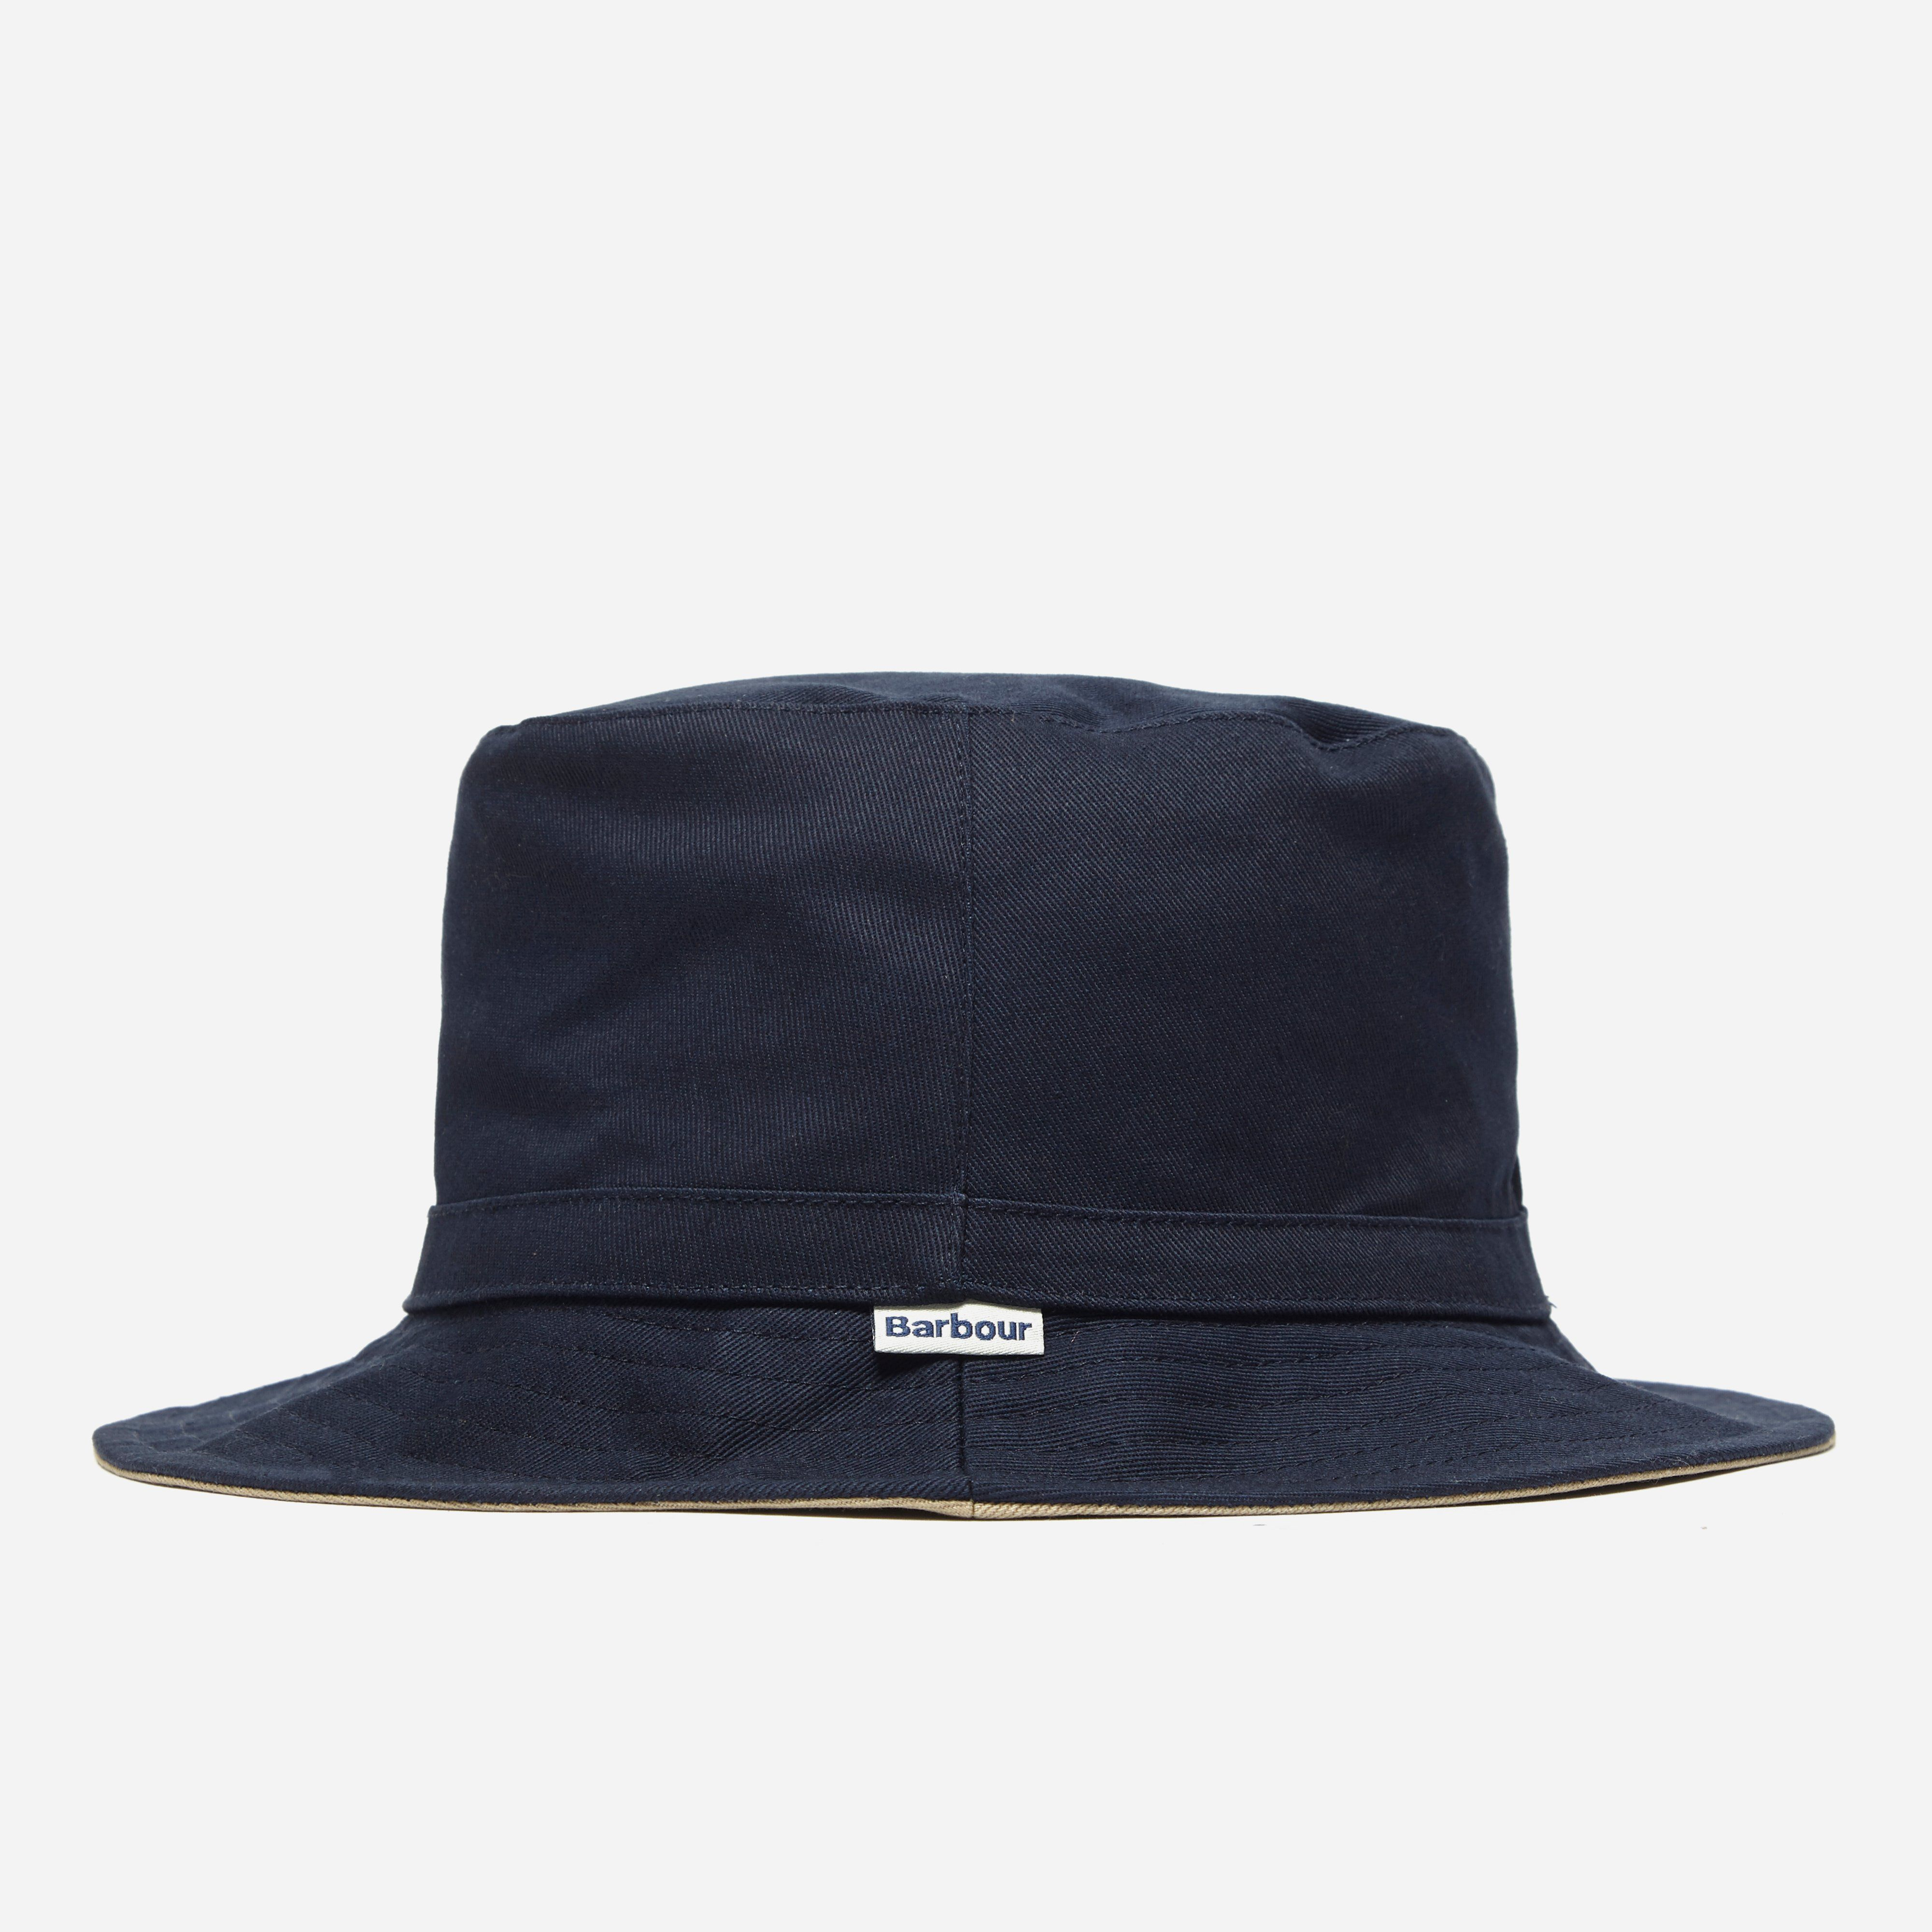 Barbour Reversible WP Sports Hat